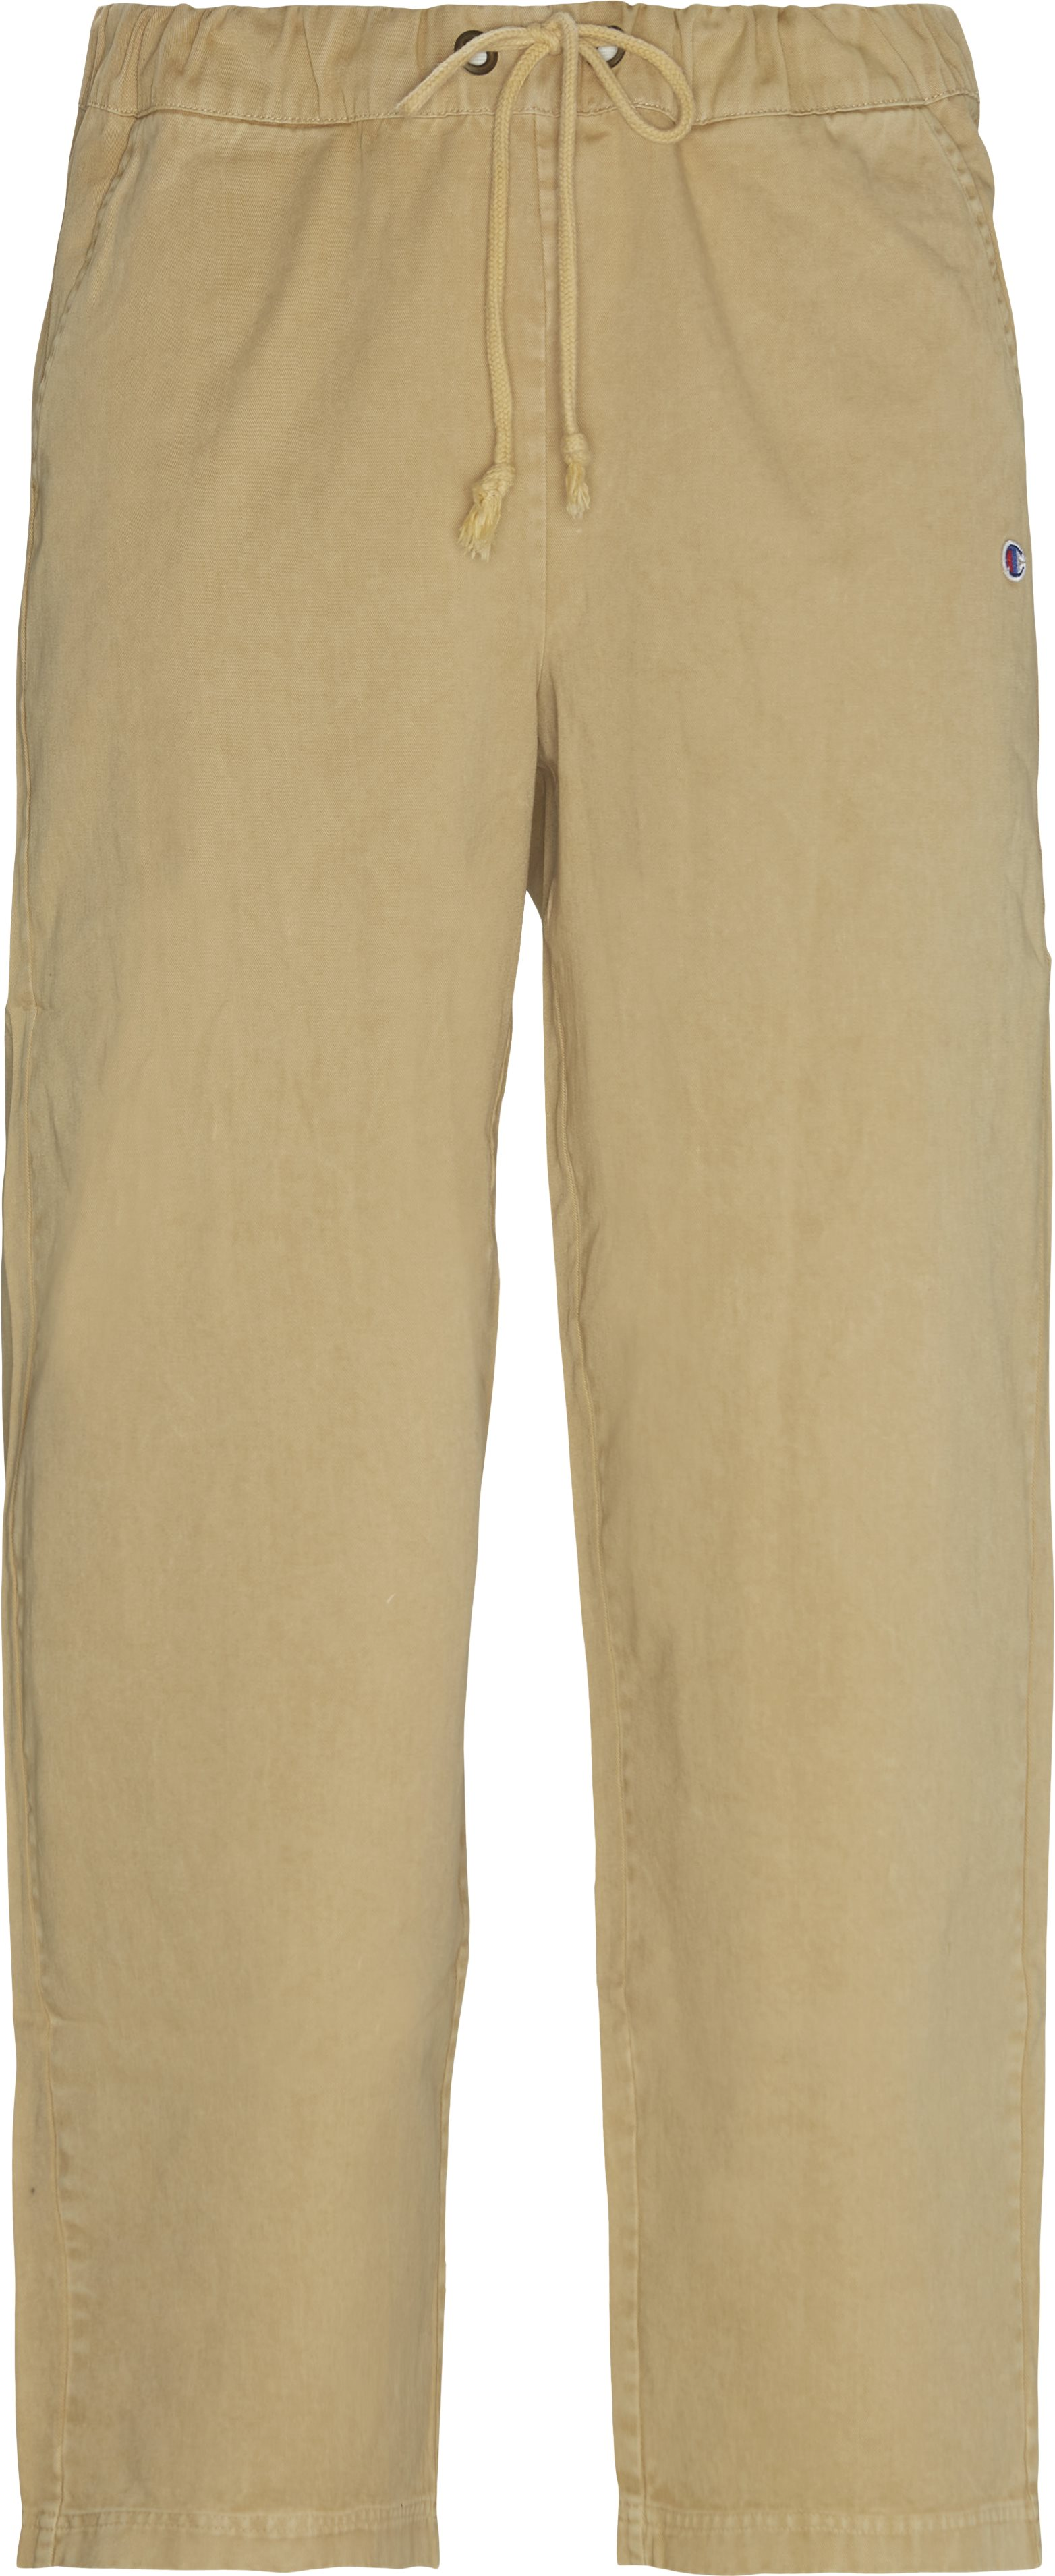 Trousers - Loose fit - Sand